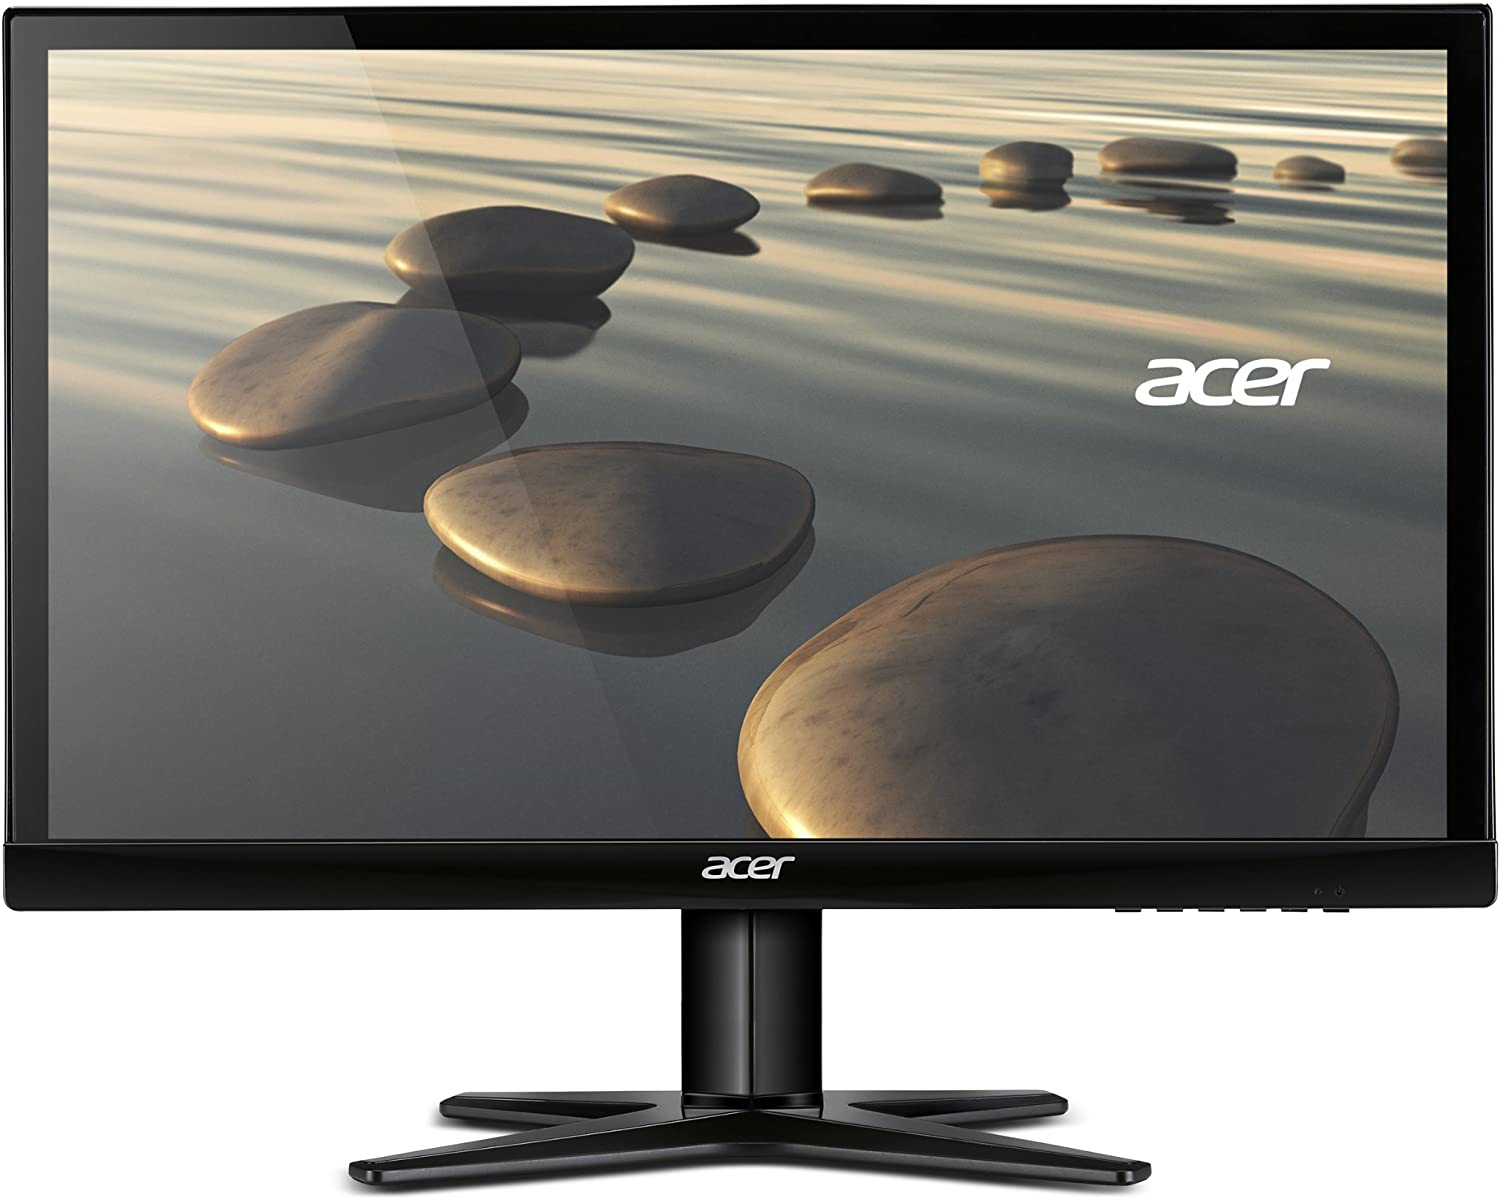 Acer G237HL bi 23-Inch LED Back-Lit (1920 x 1080) Widescreen Display